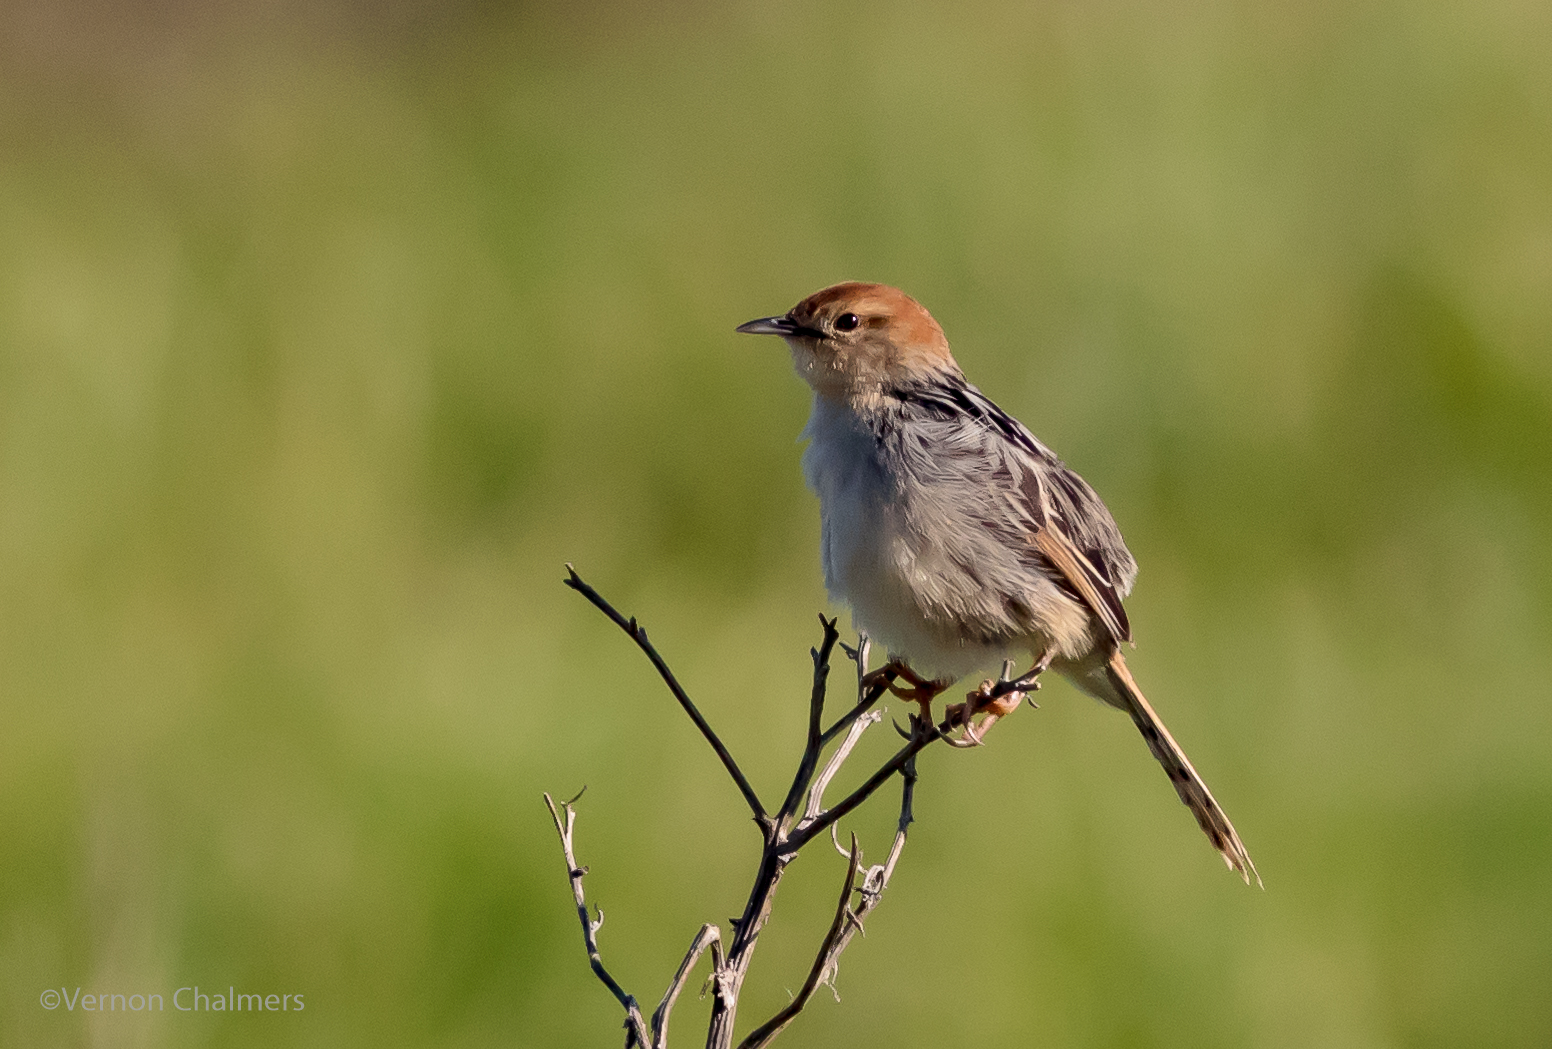 Vernon Chalmers Photography: Small Birds with Birds in ...